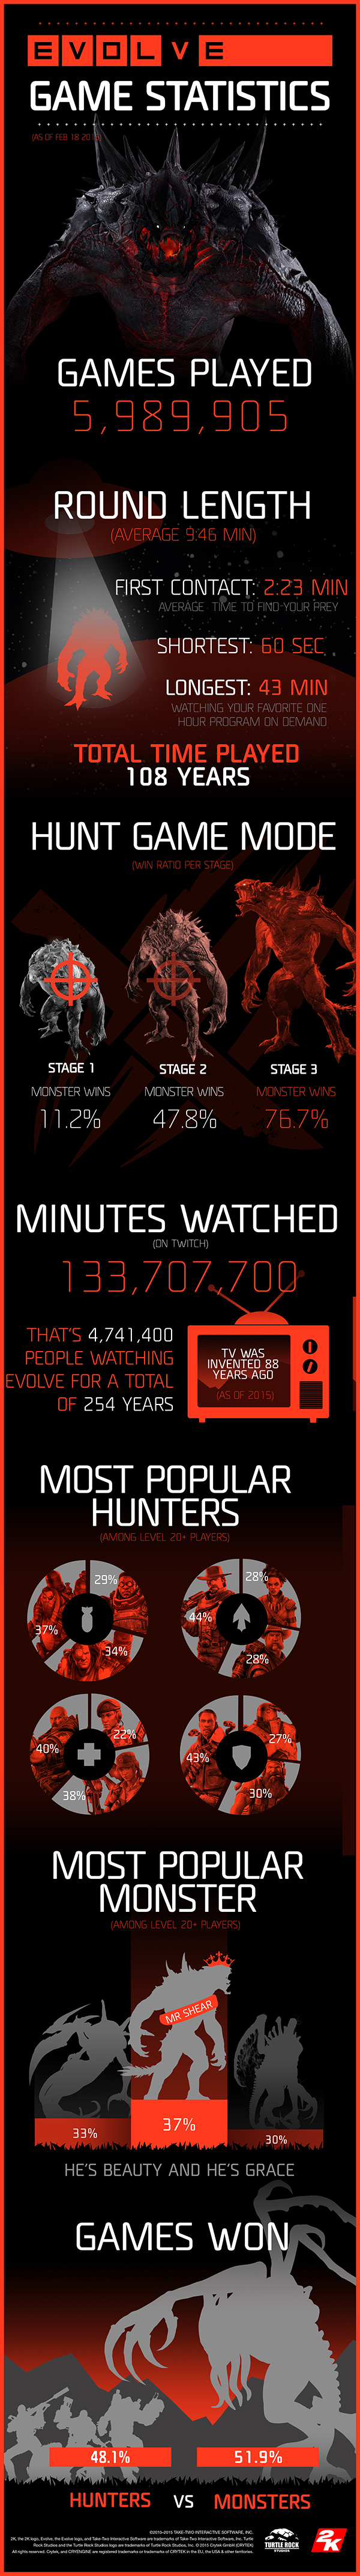 2K_EVOLVE_LAUNCH_INFOGRAPHIC